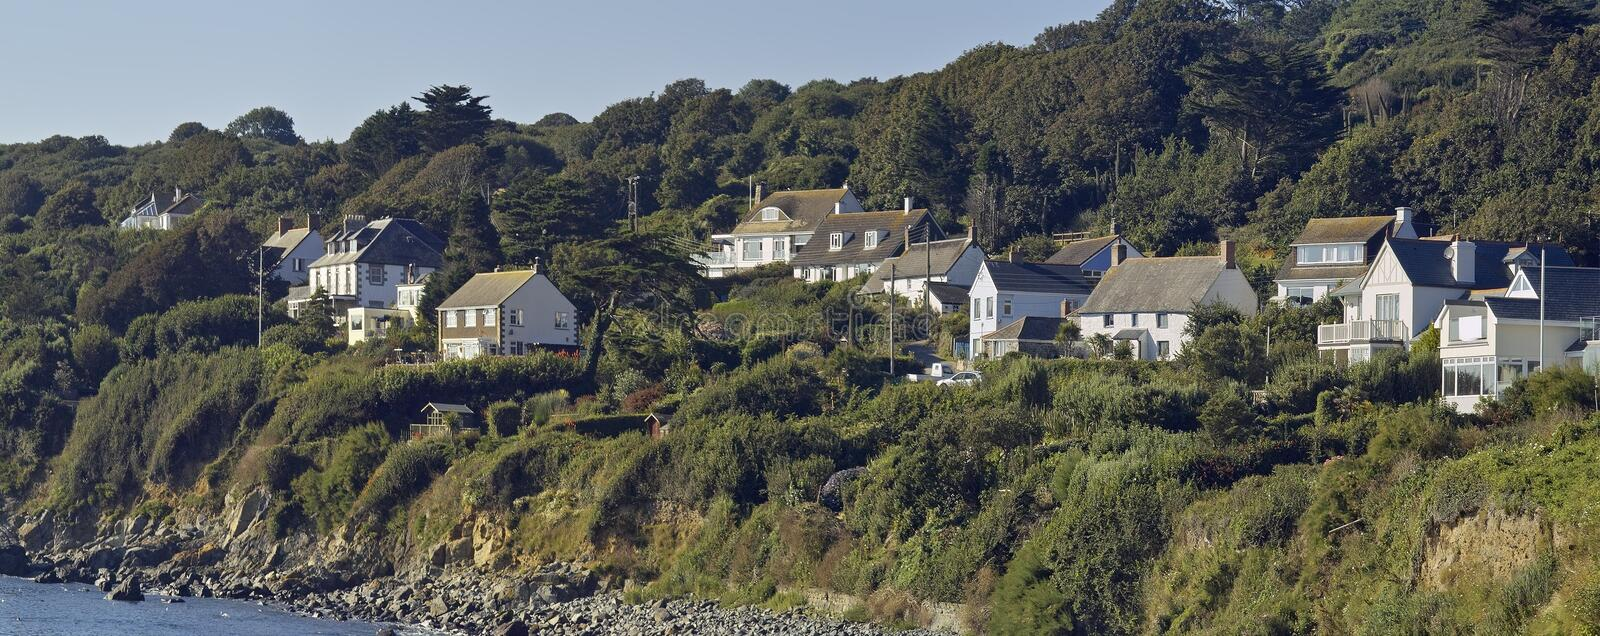 Download Coverack stock image. Image of scenic, holidays, scenery - 5901515